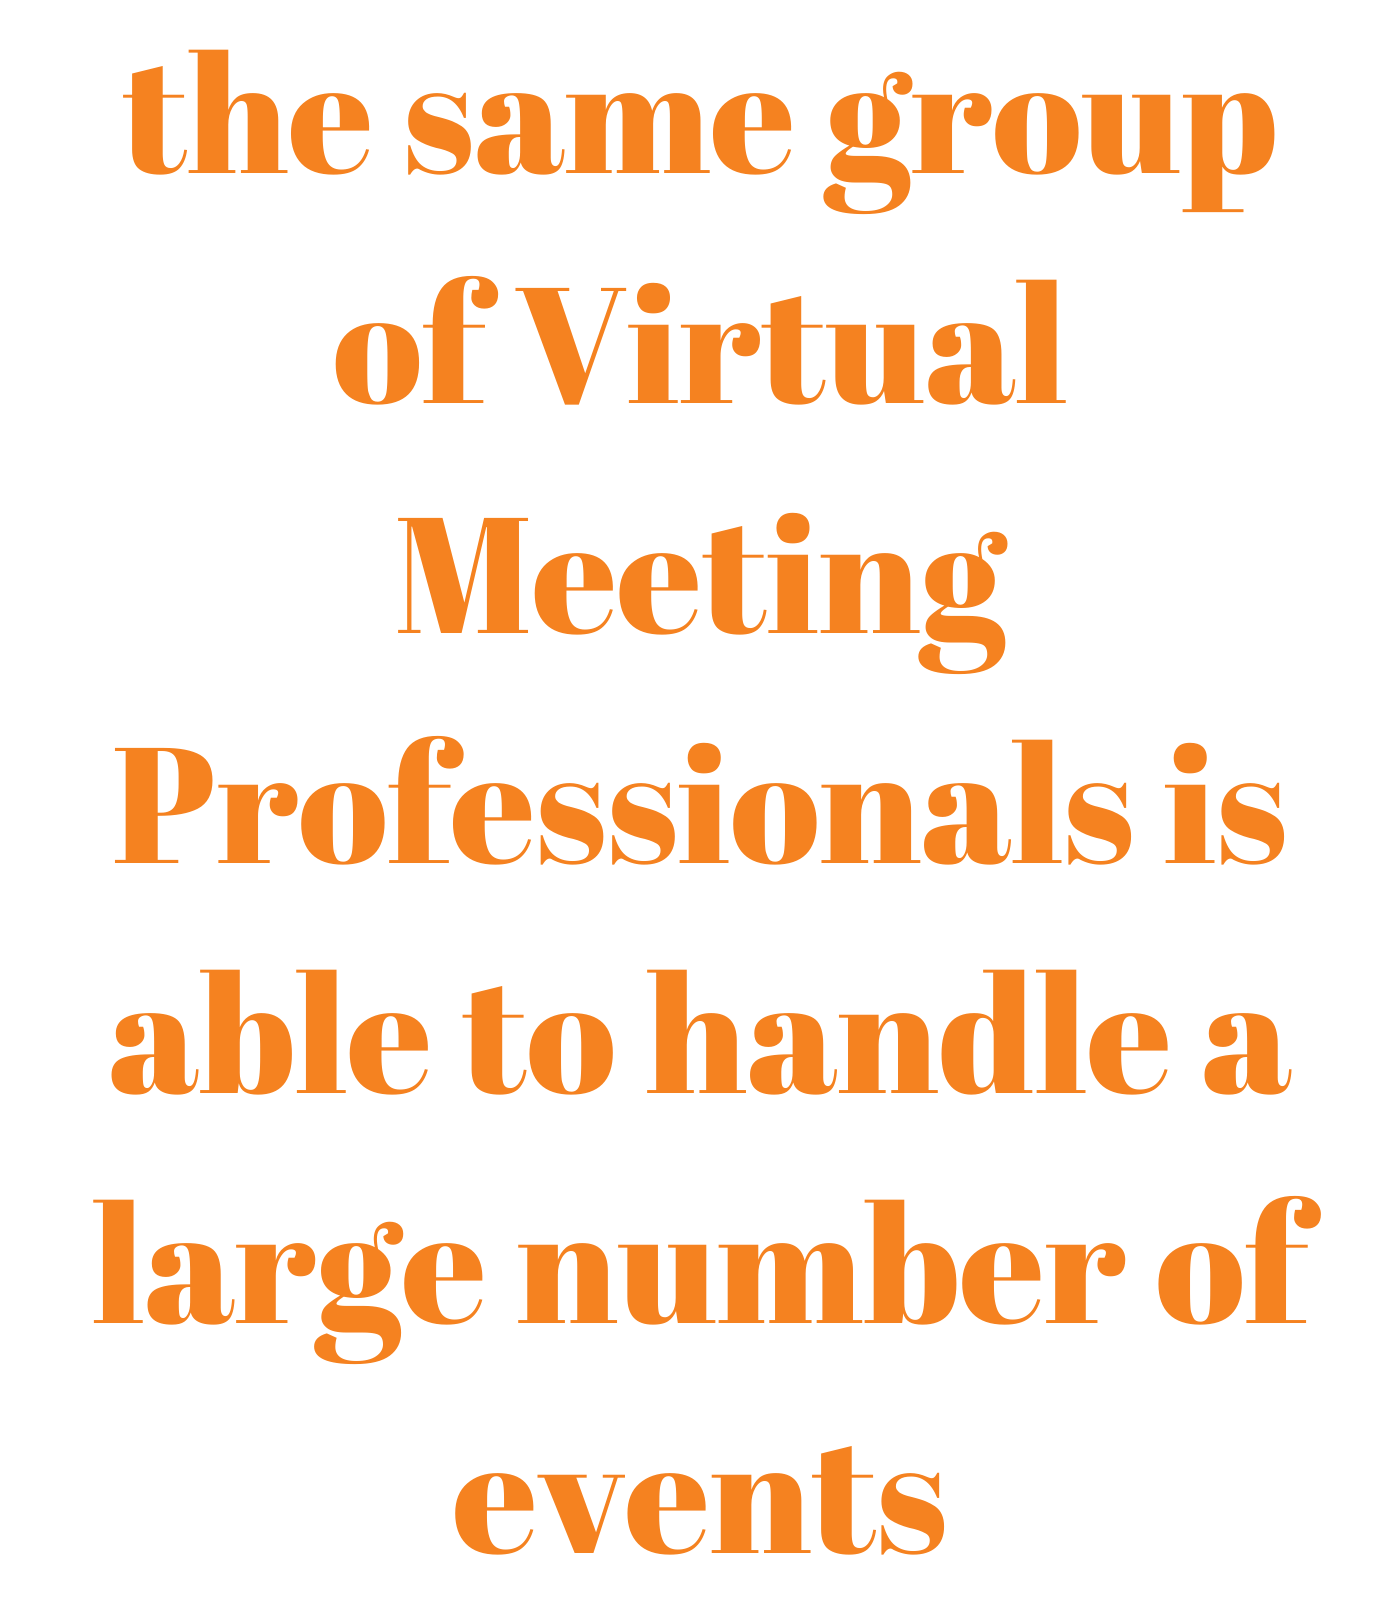 The same group of virtual meeting professionals is able to handle a large number of events